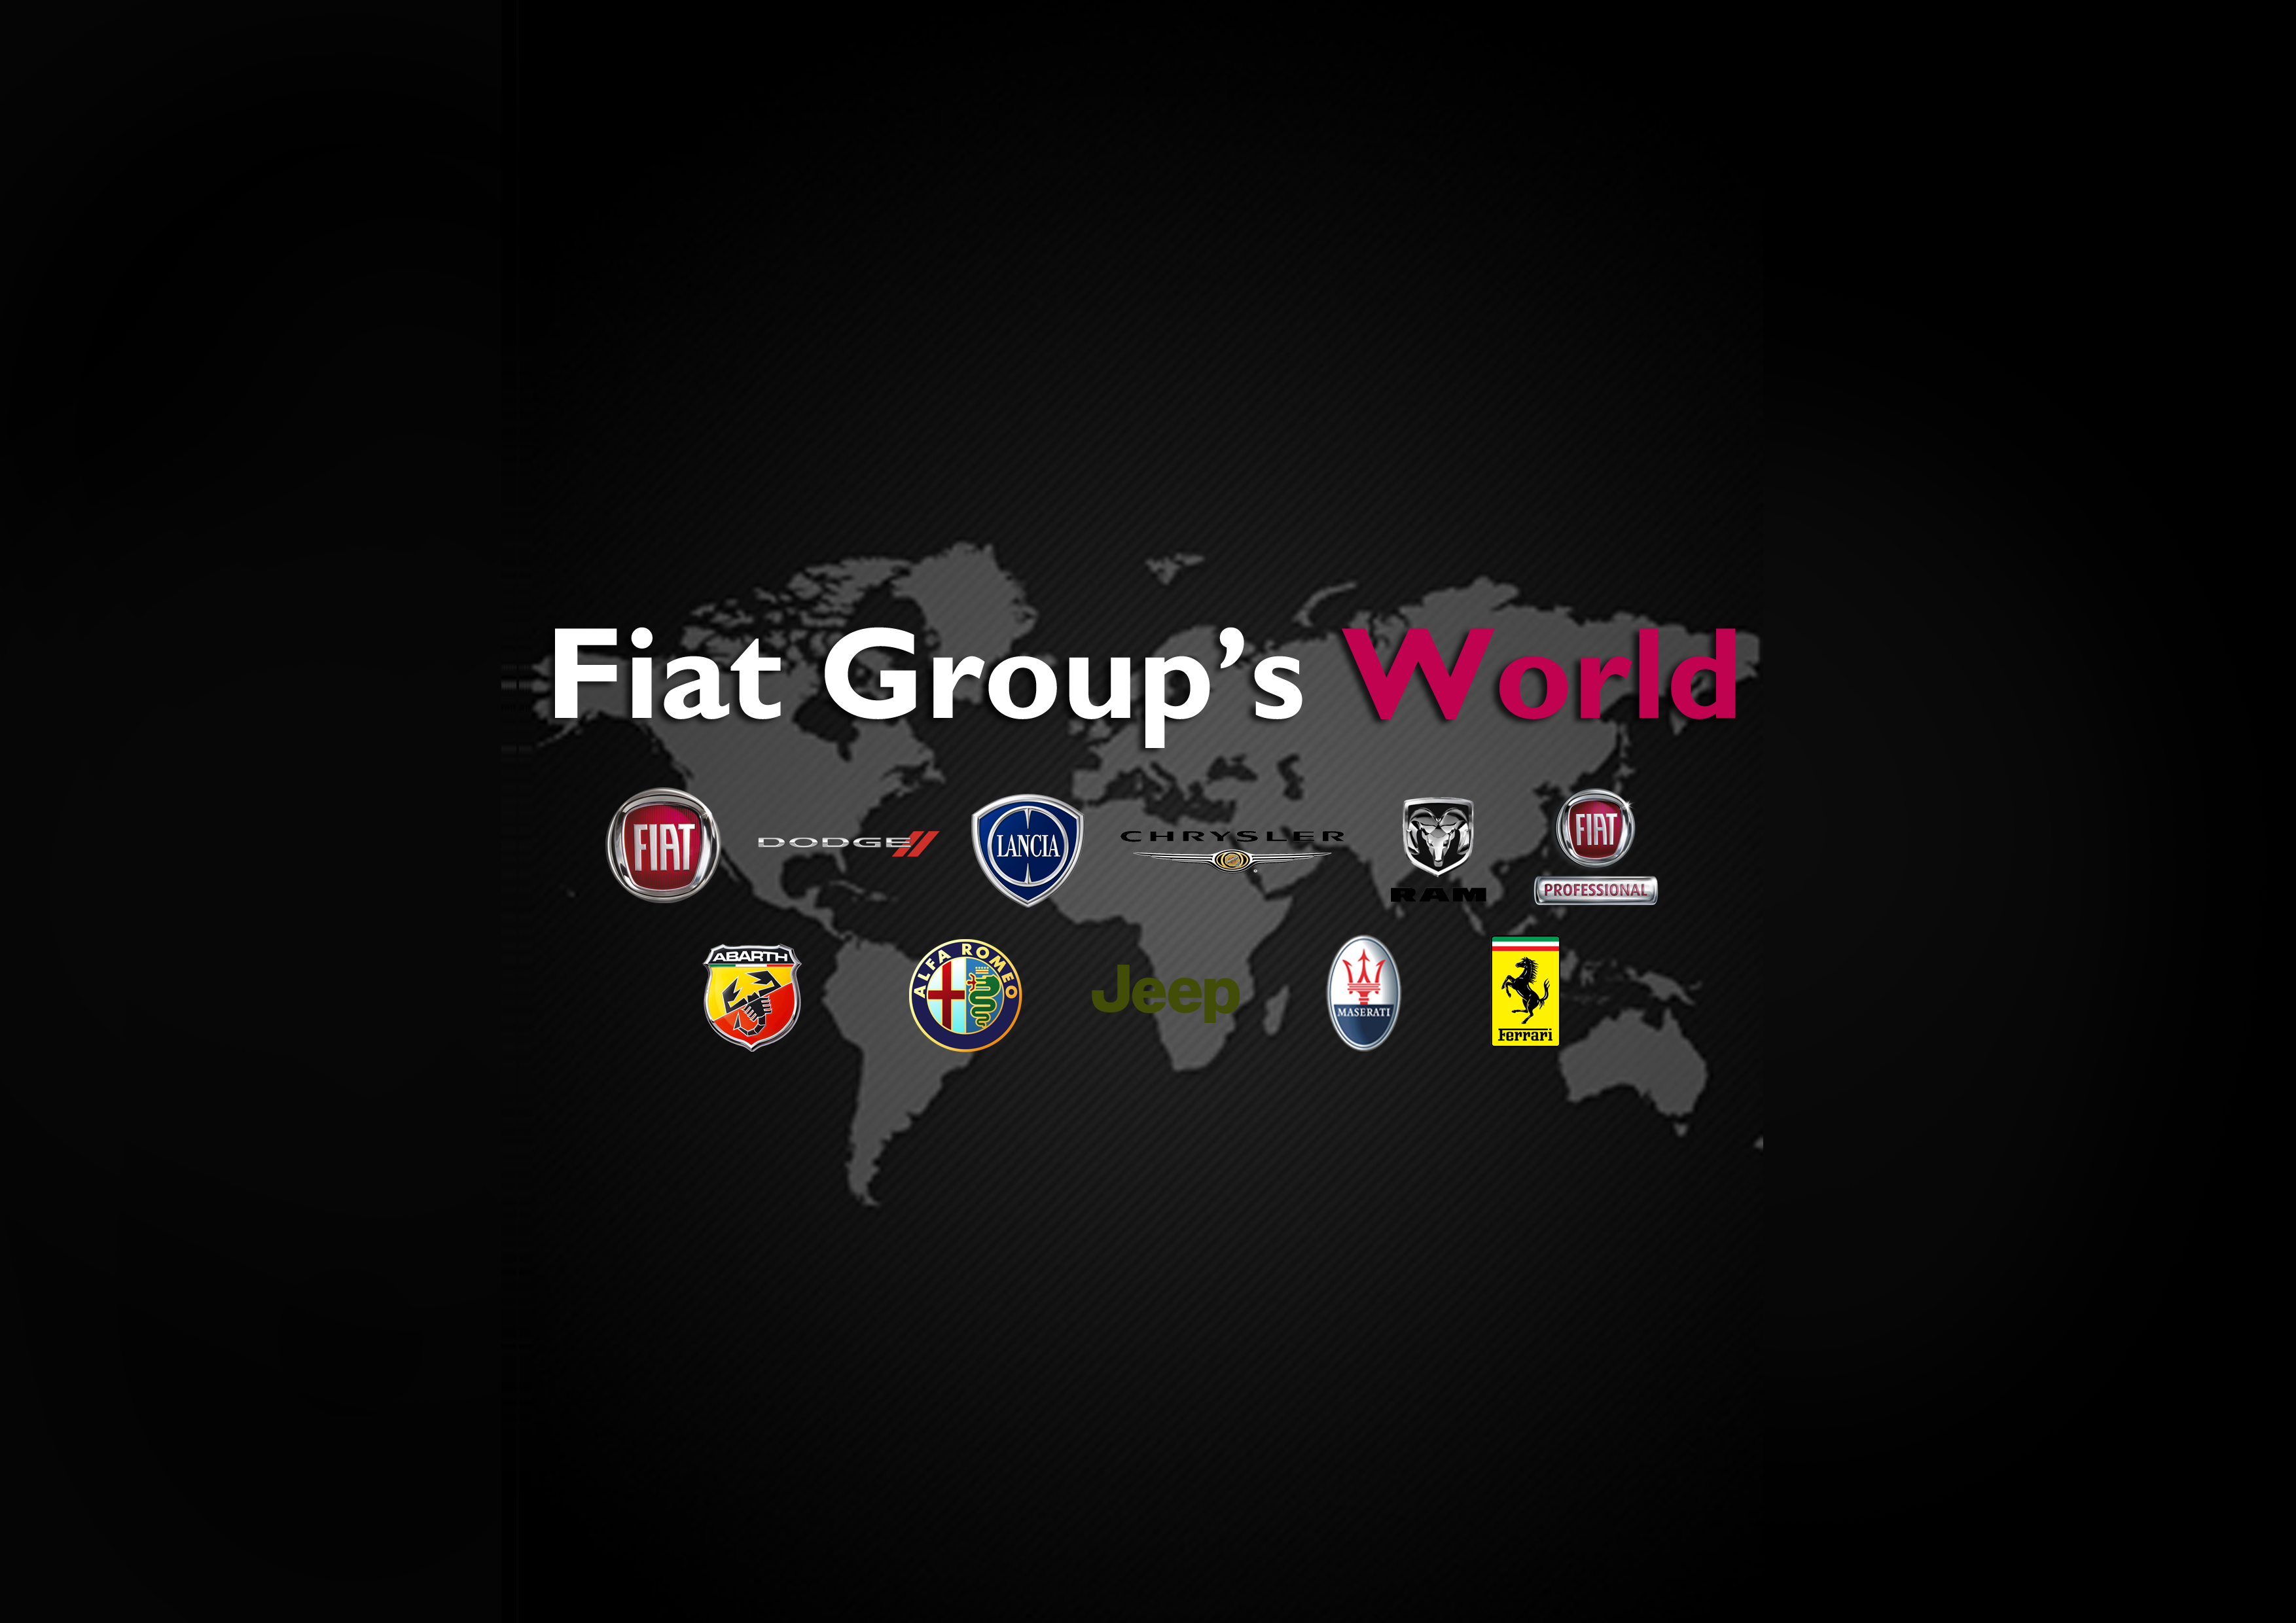 The first year of 'Fiat Group's World' | Fiat Group's World